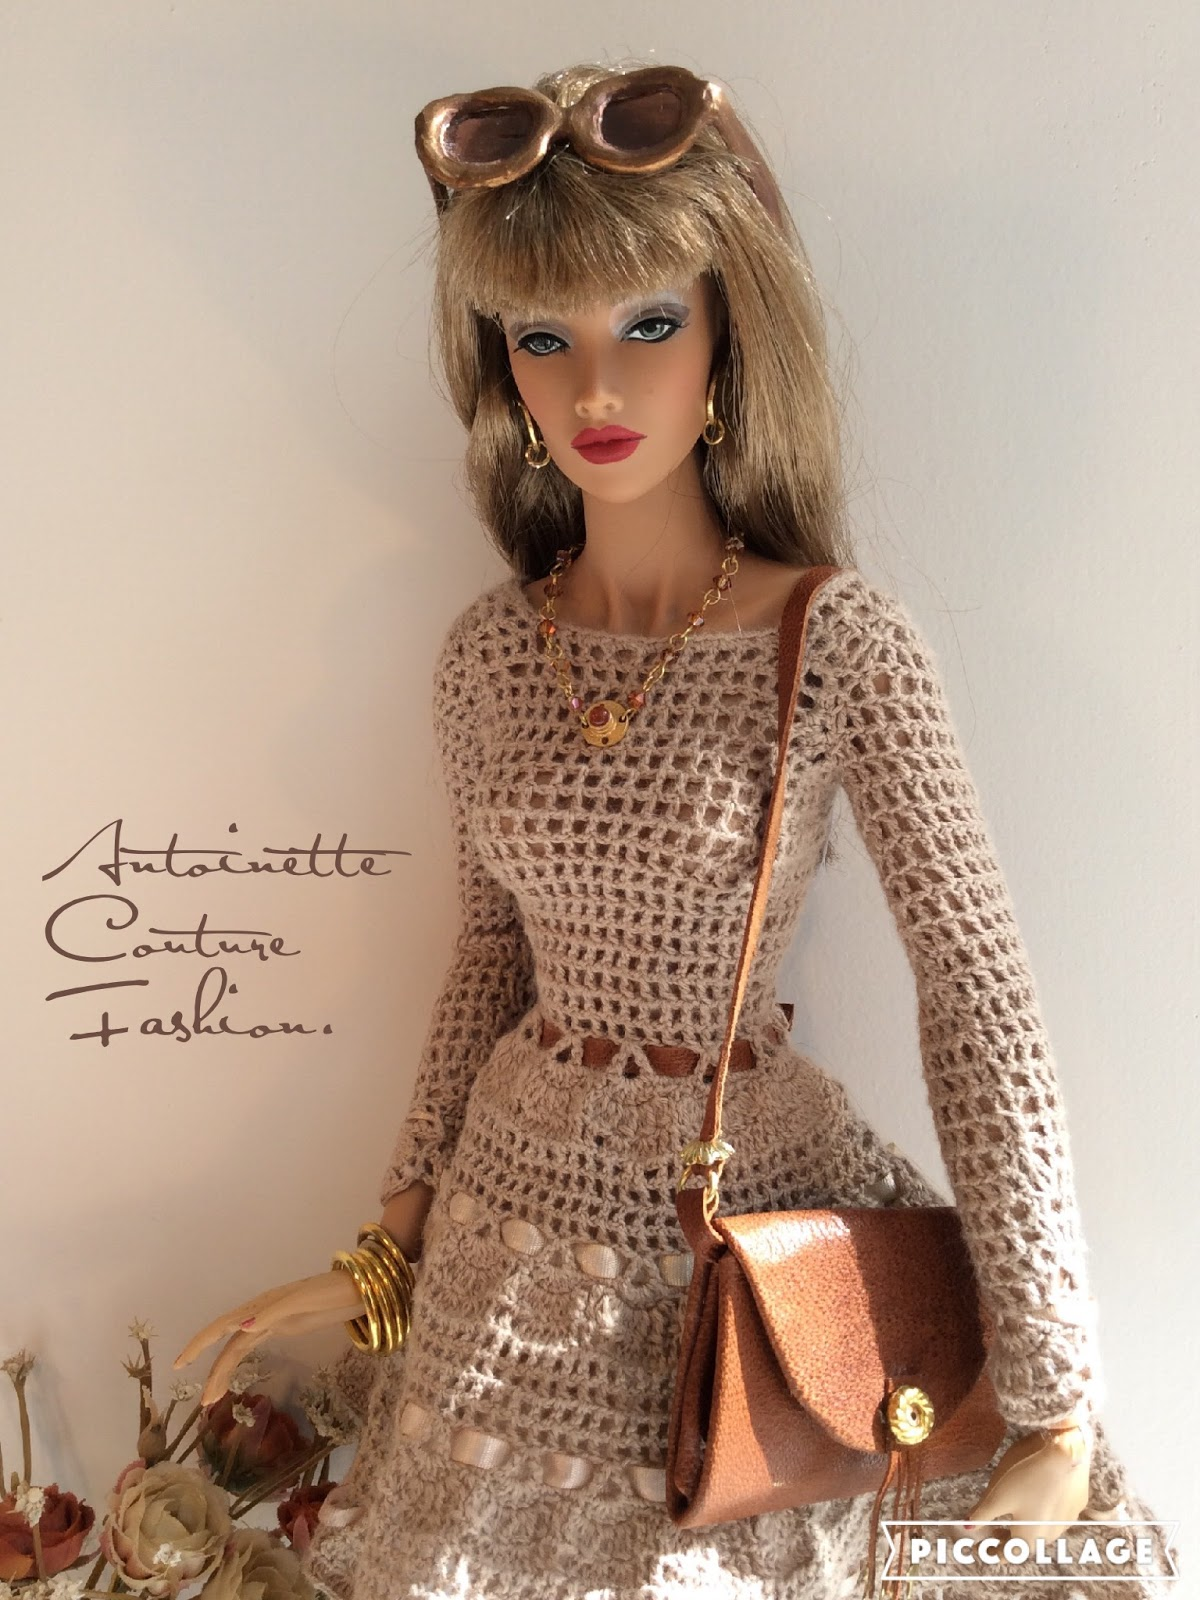 Fashion Dolls Couture - Unlimited: October 2016